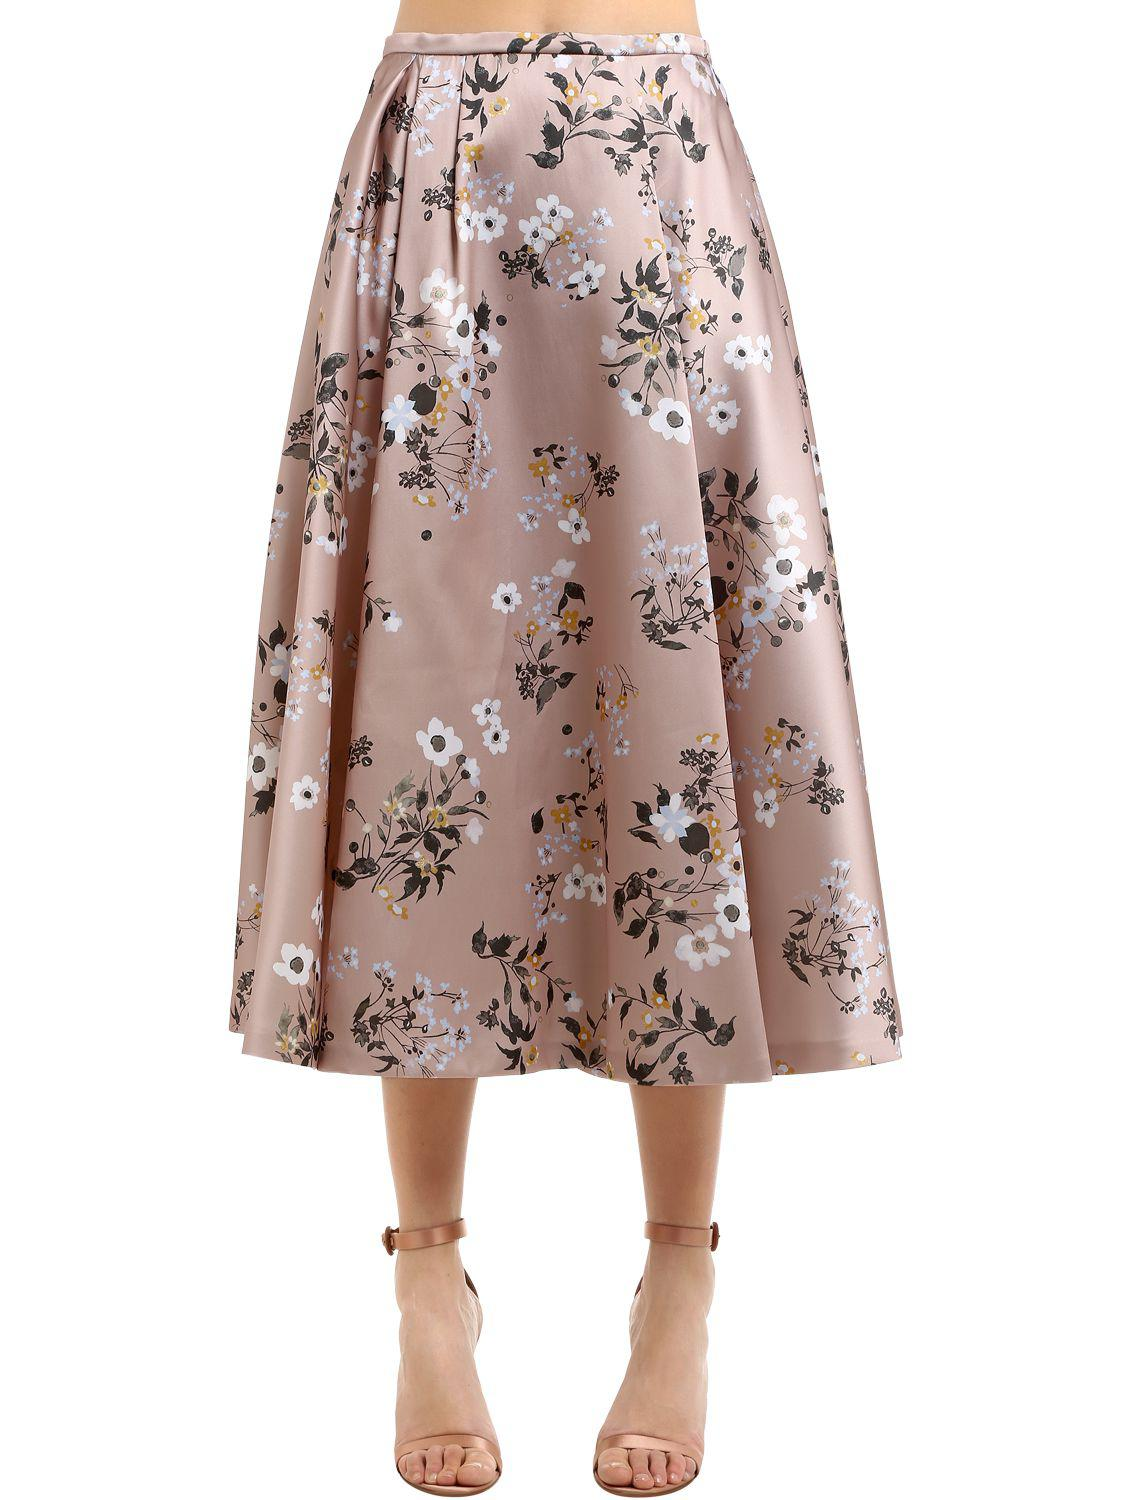 Floral Pleated Midi Skirt Rochas Free Shipping Visit New Outlet Real Hot Sale Sneakernews Cheap Price Outlet Wholesale Price CH1Q1Iua7